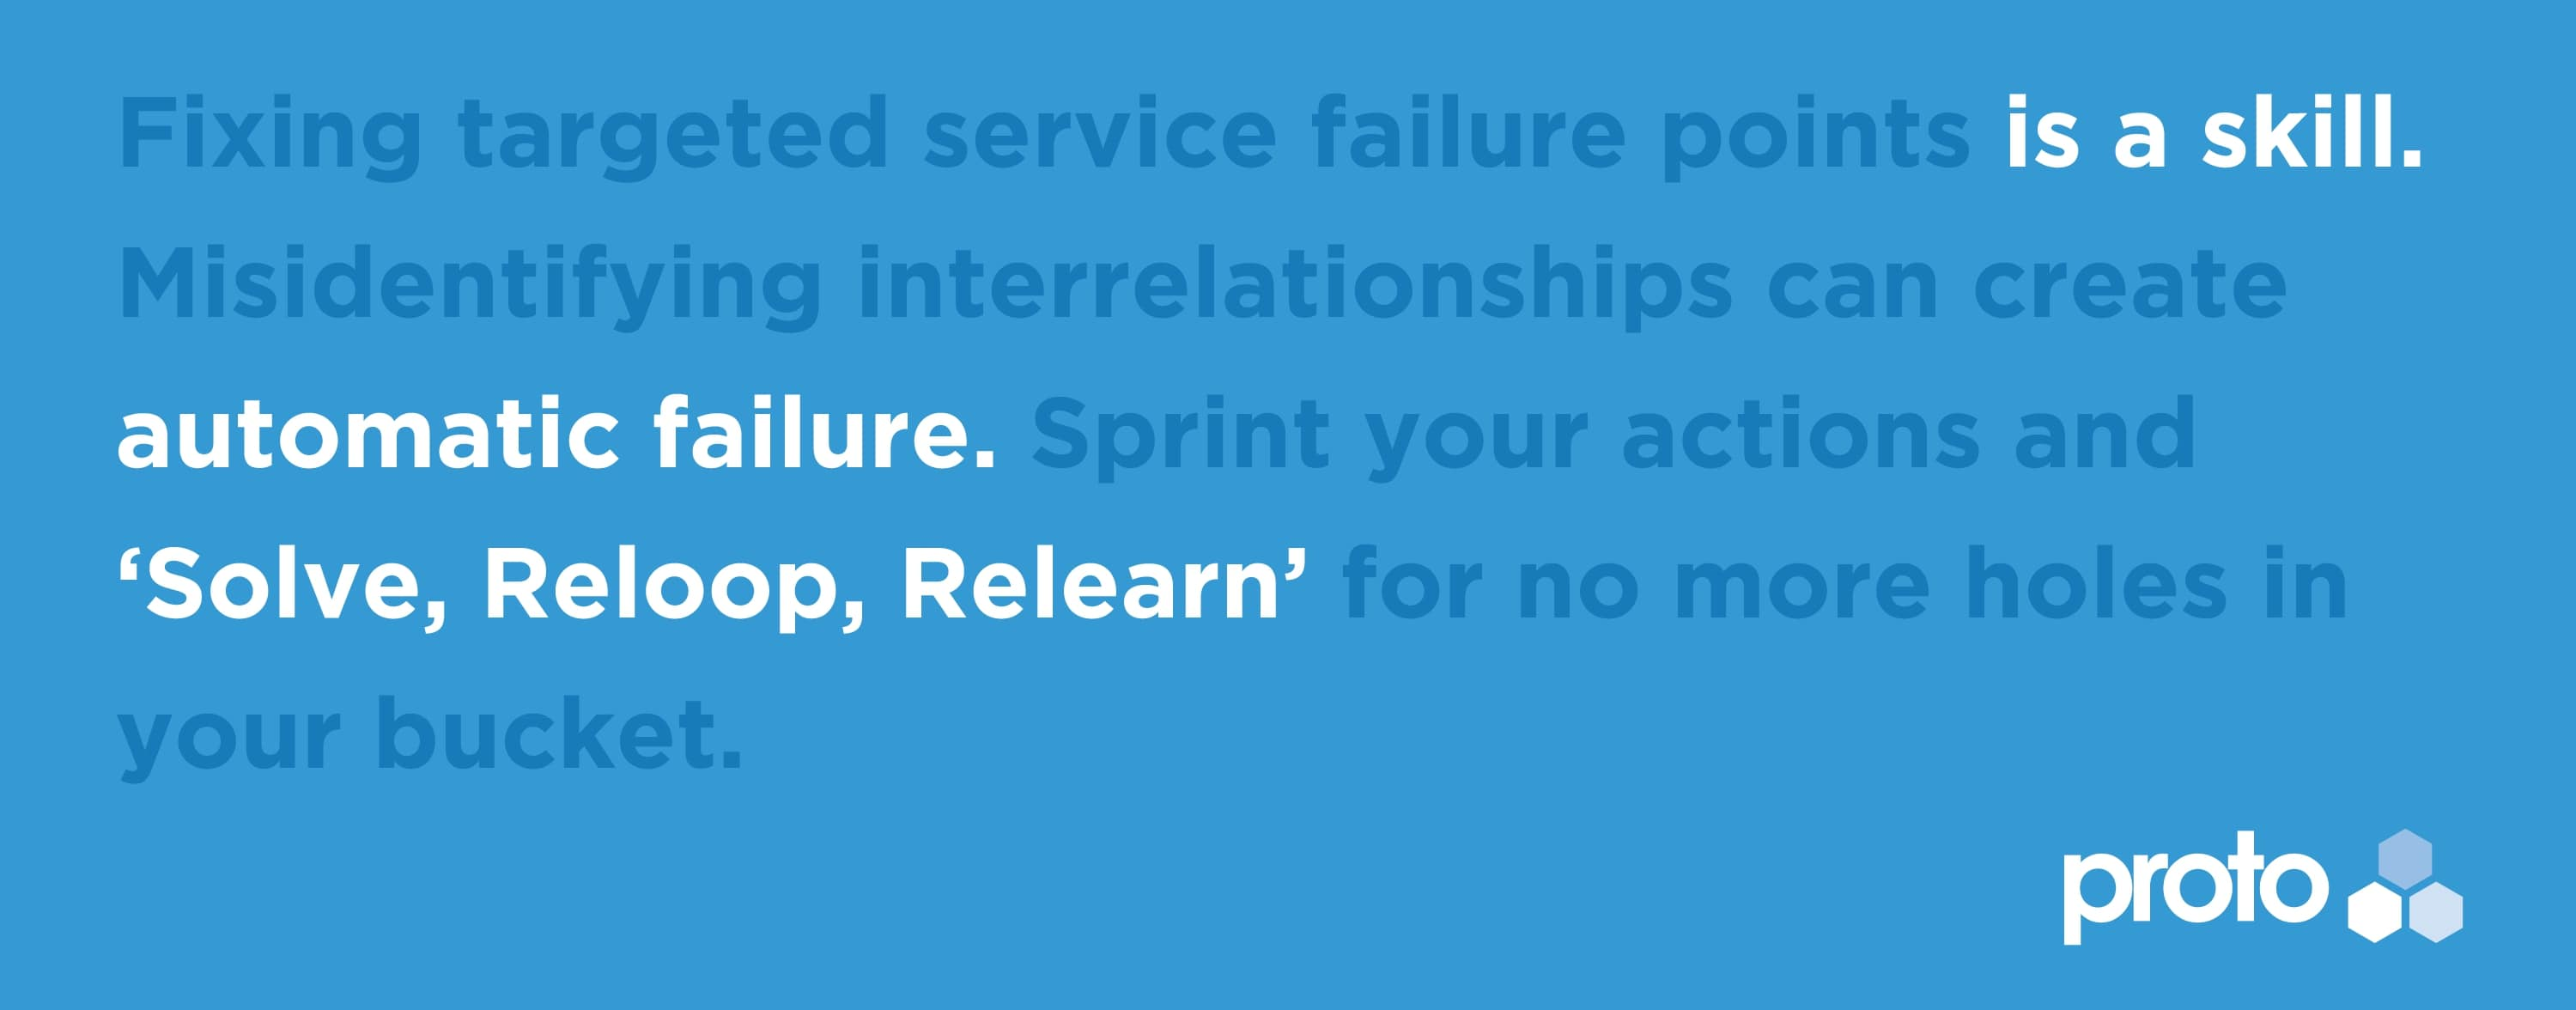 Fixing targeted service failure points is a skill. Misidentifying interrelationships can create automatic failure. Sprint your actions and 'Solve, Reloop, Relearn' for no more holes in your bucket.